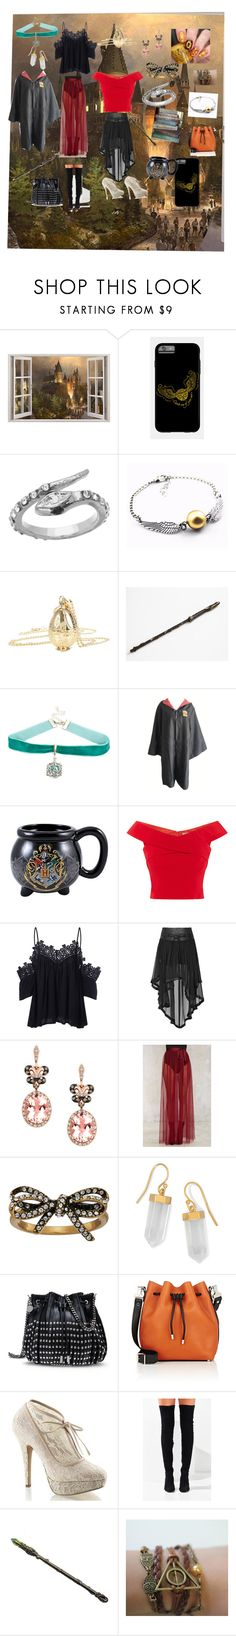 """""""Harry Potter"""" by jessicajadotte ❤ liked on Polyvore featuring Blu Bijoux, Warner Bros., Effy Jewelry, Nasty Gal, Marc Jacobs, BillyTheTree, STELLA McCARTNEY, Proenza Schouler, Pinup Couture and Jeffrey Campbell"""